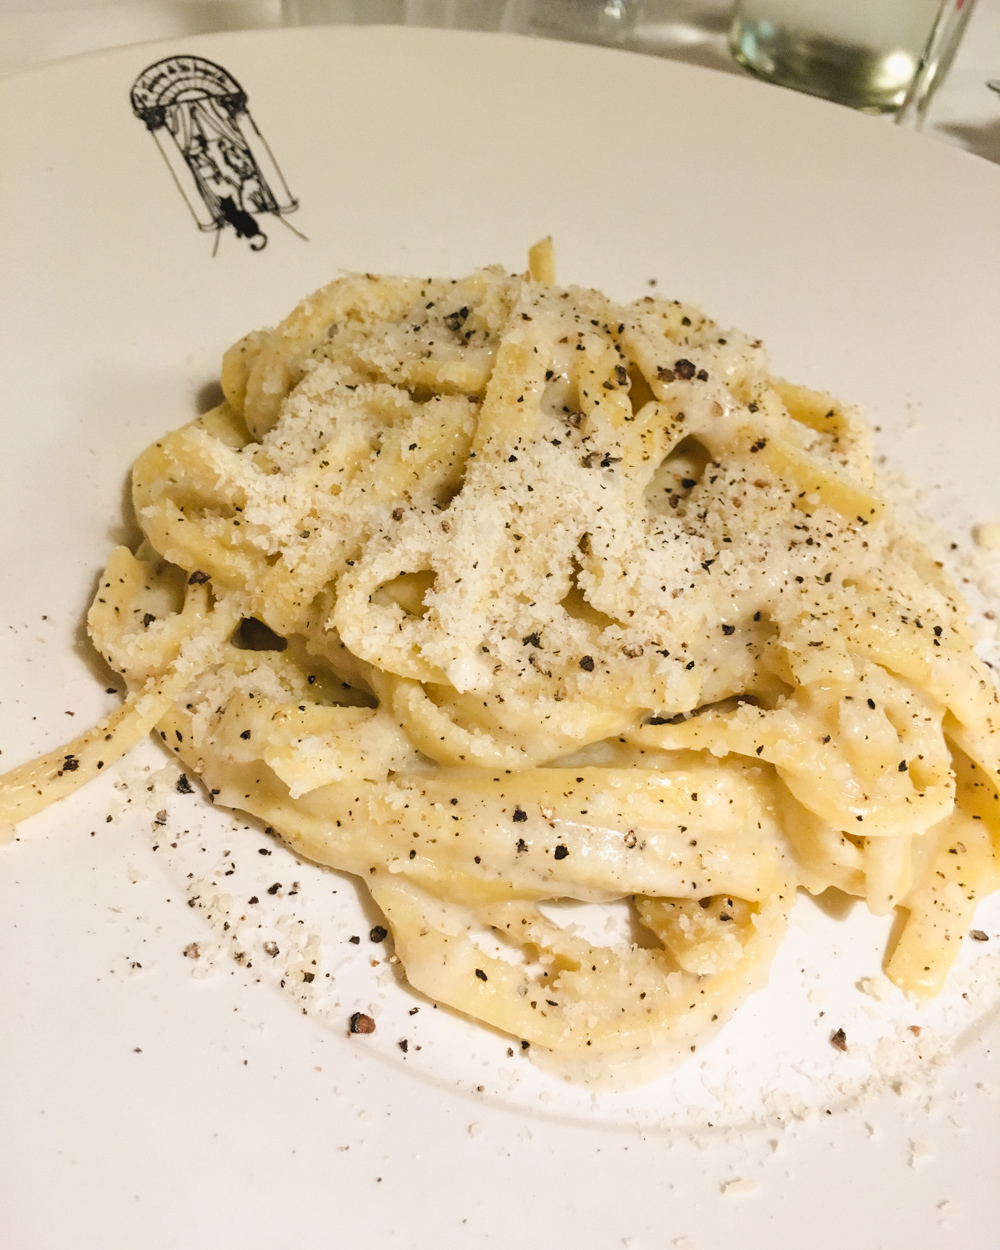 Where to eat and drink in Rome| Cacio e pepe